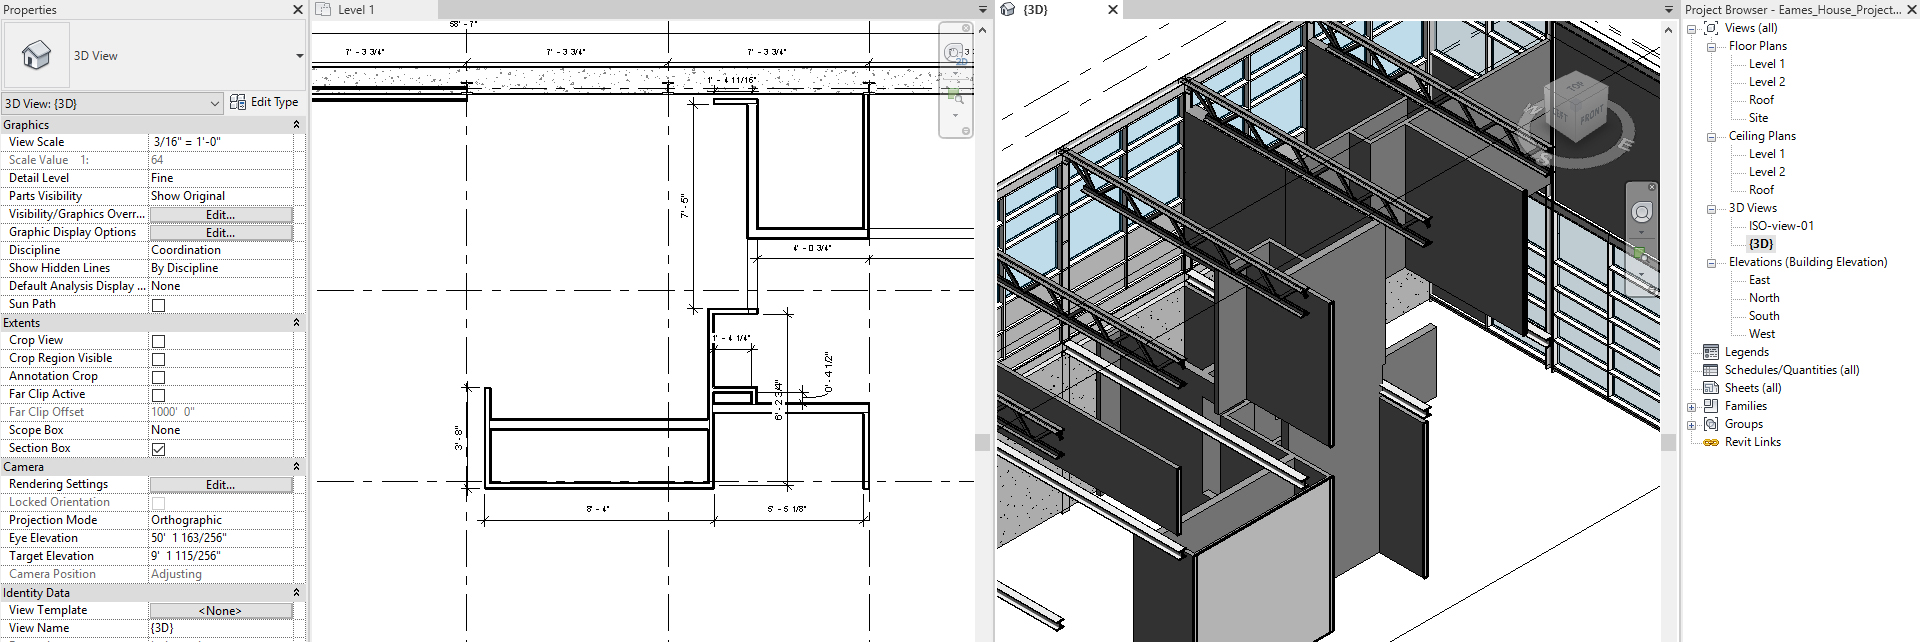 It shows the floor plan view and the 3D view.